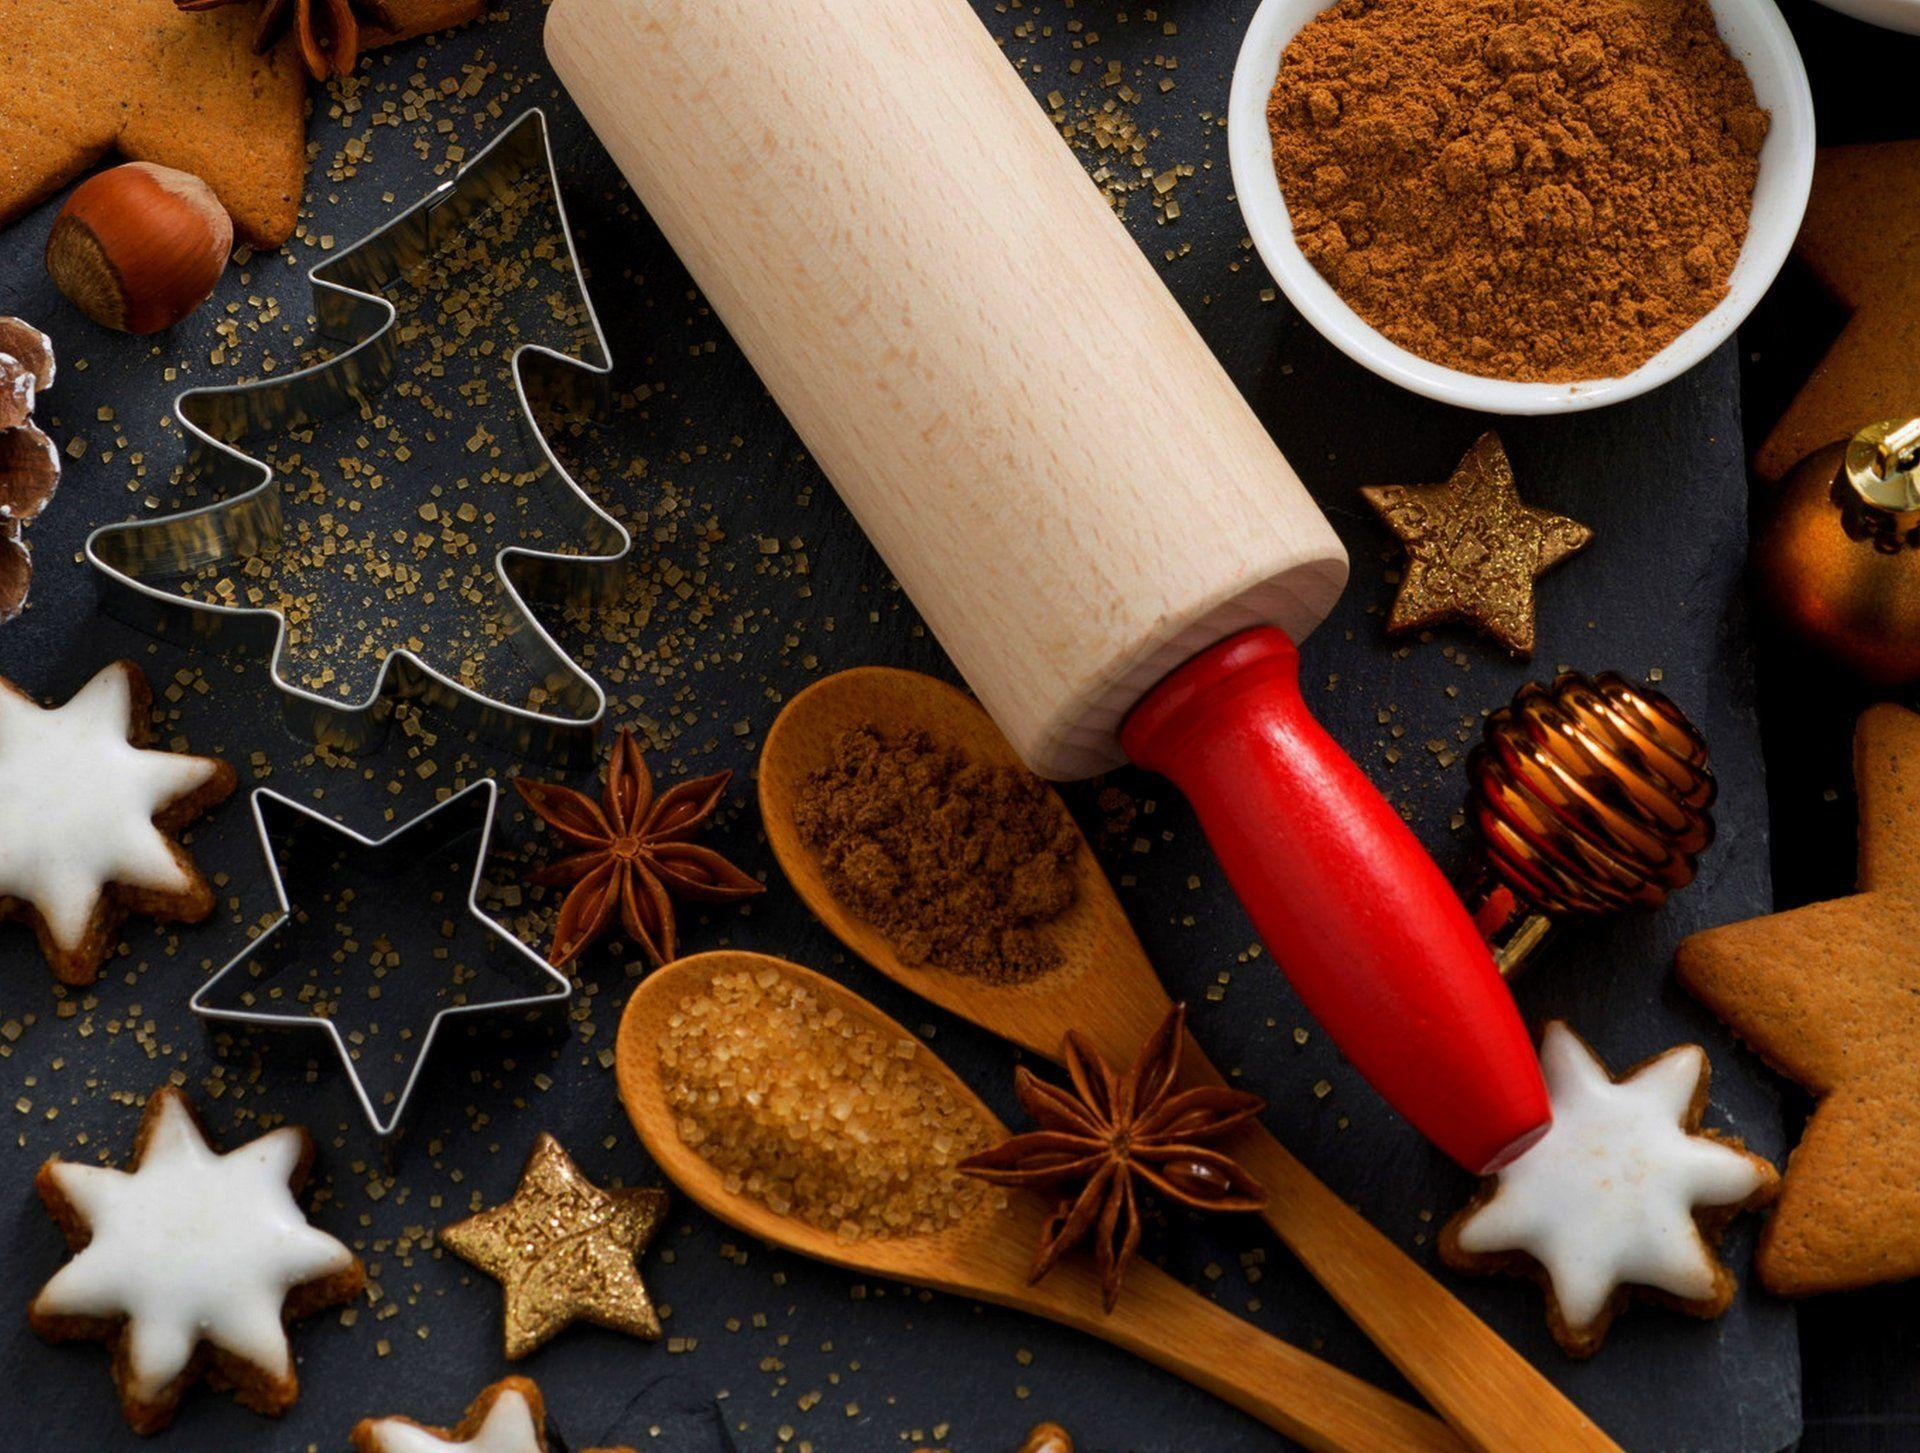 holiday cocoa sugar hazelnut christmas new year dessert sweet food ...